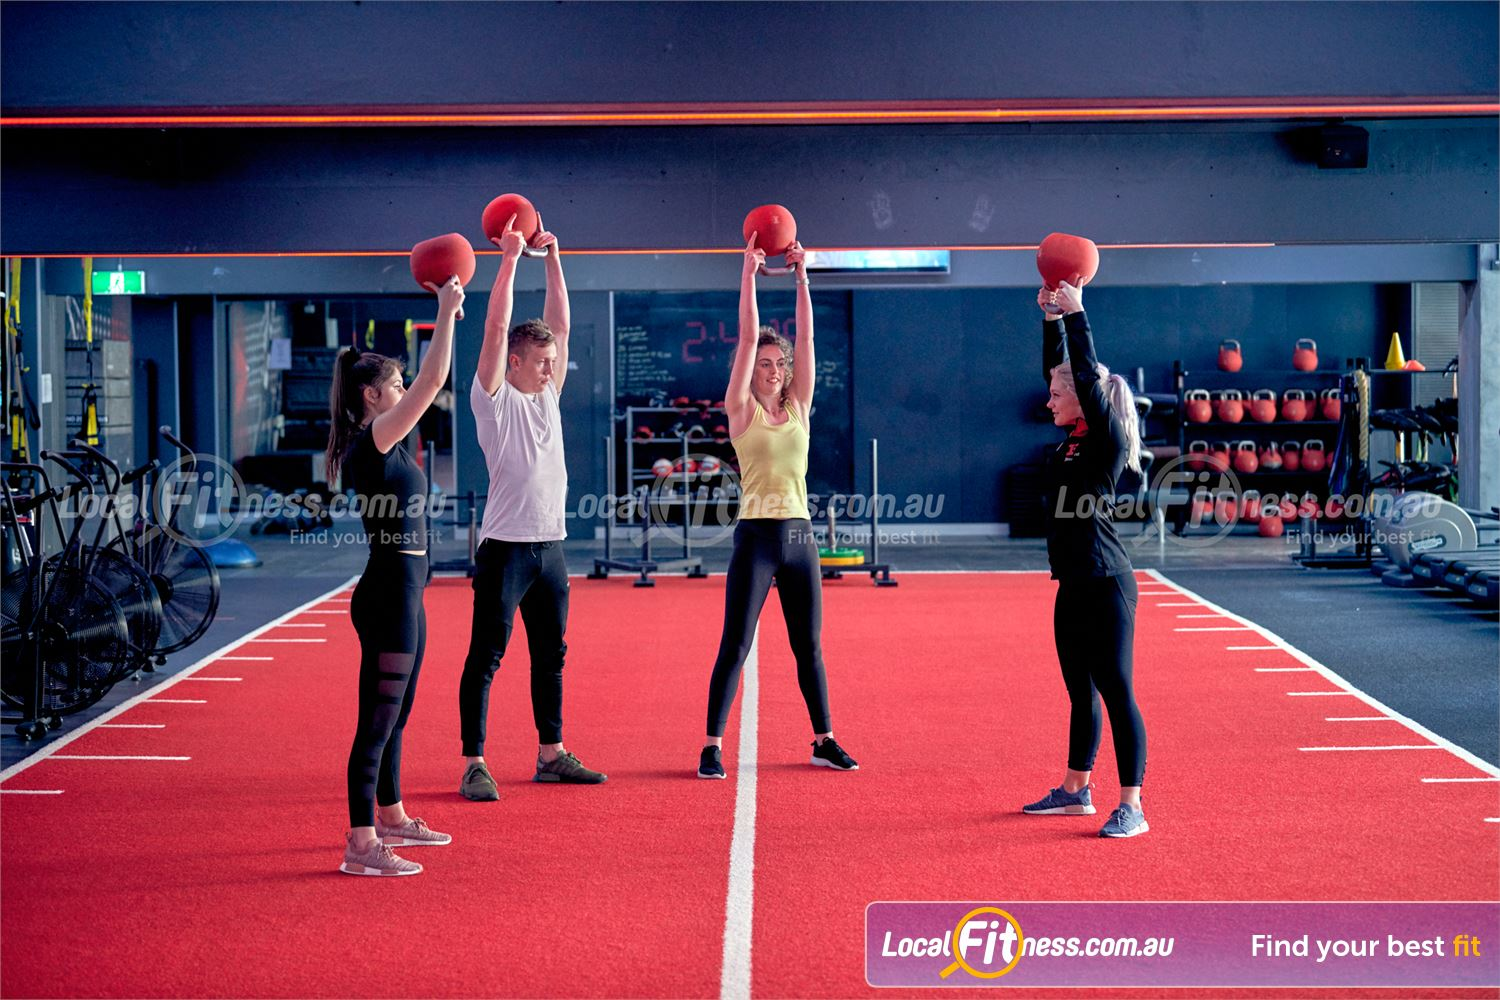 Fitness First Castle Hill Welcome to the state of the art Fitness First Castle Hill gym.